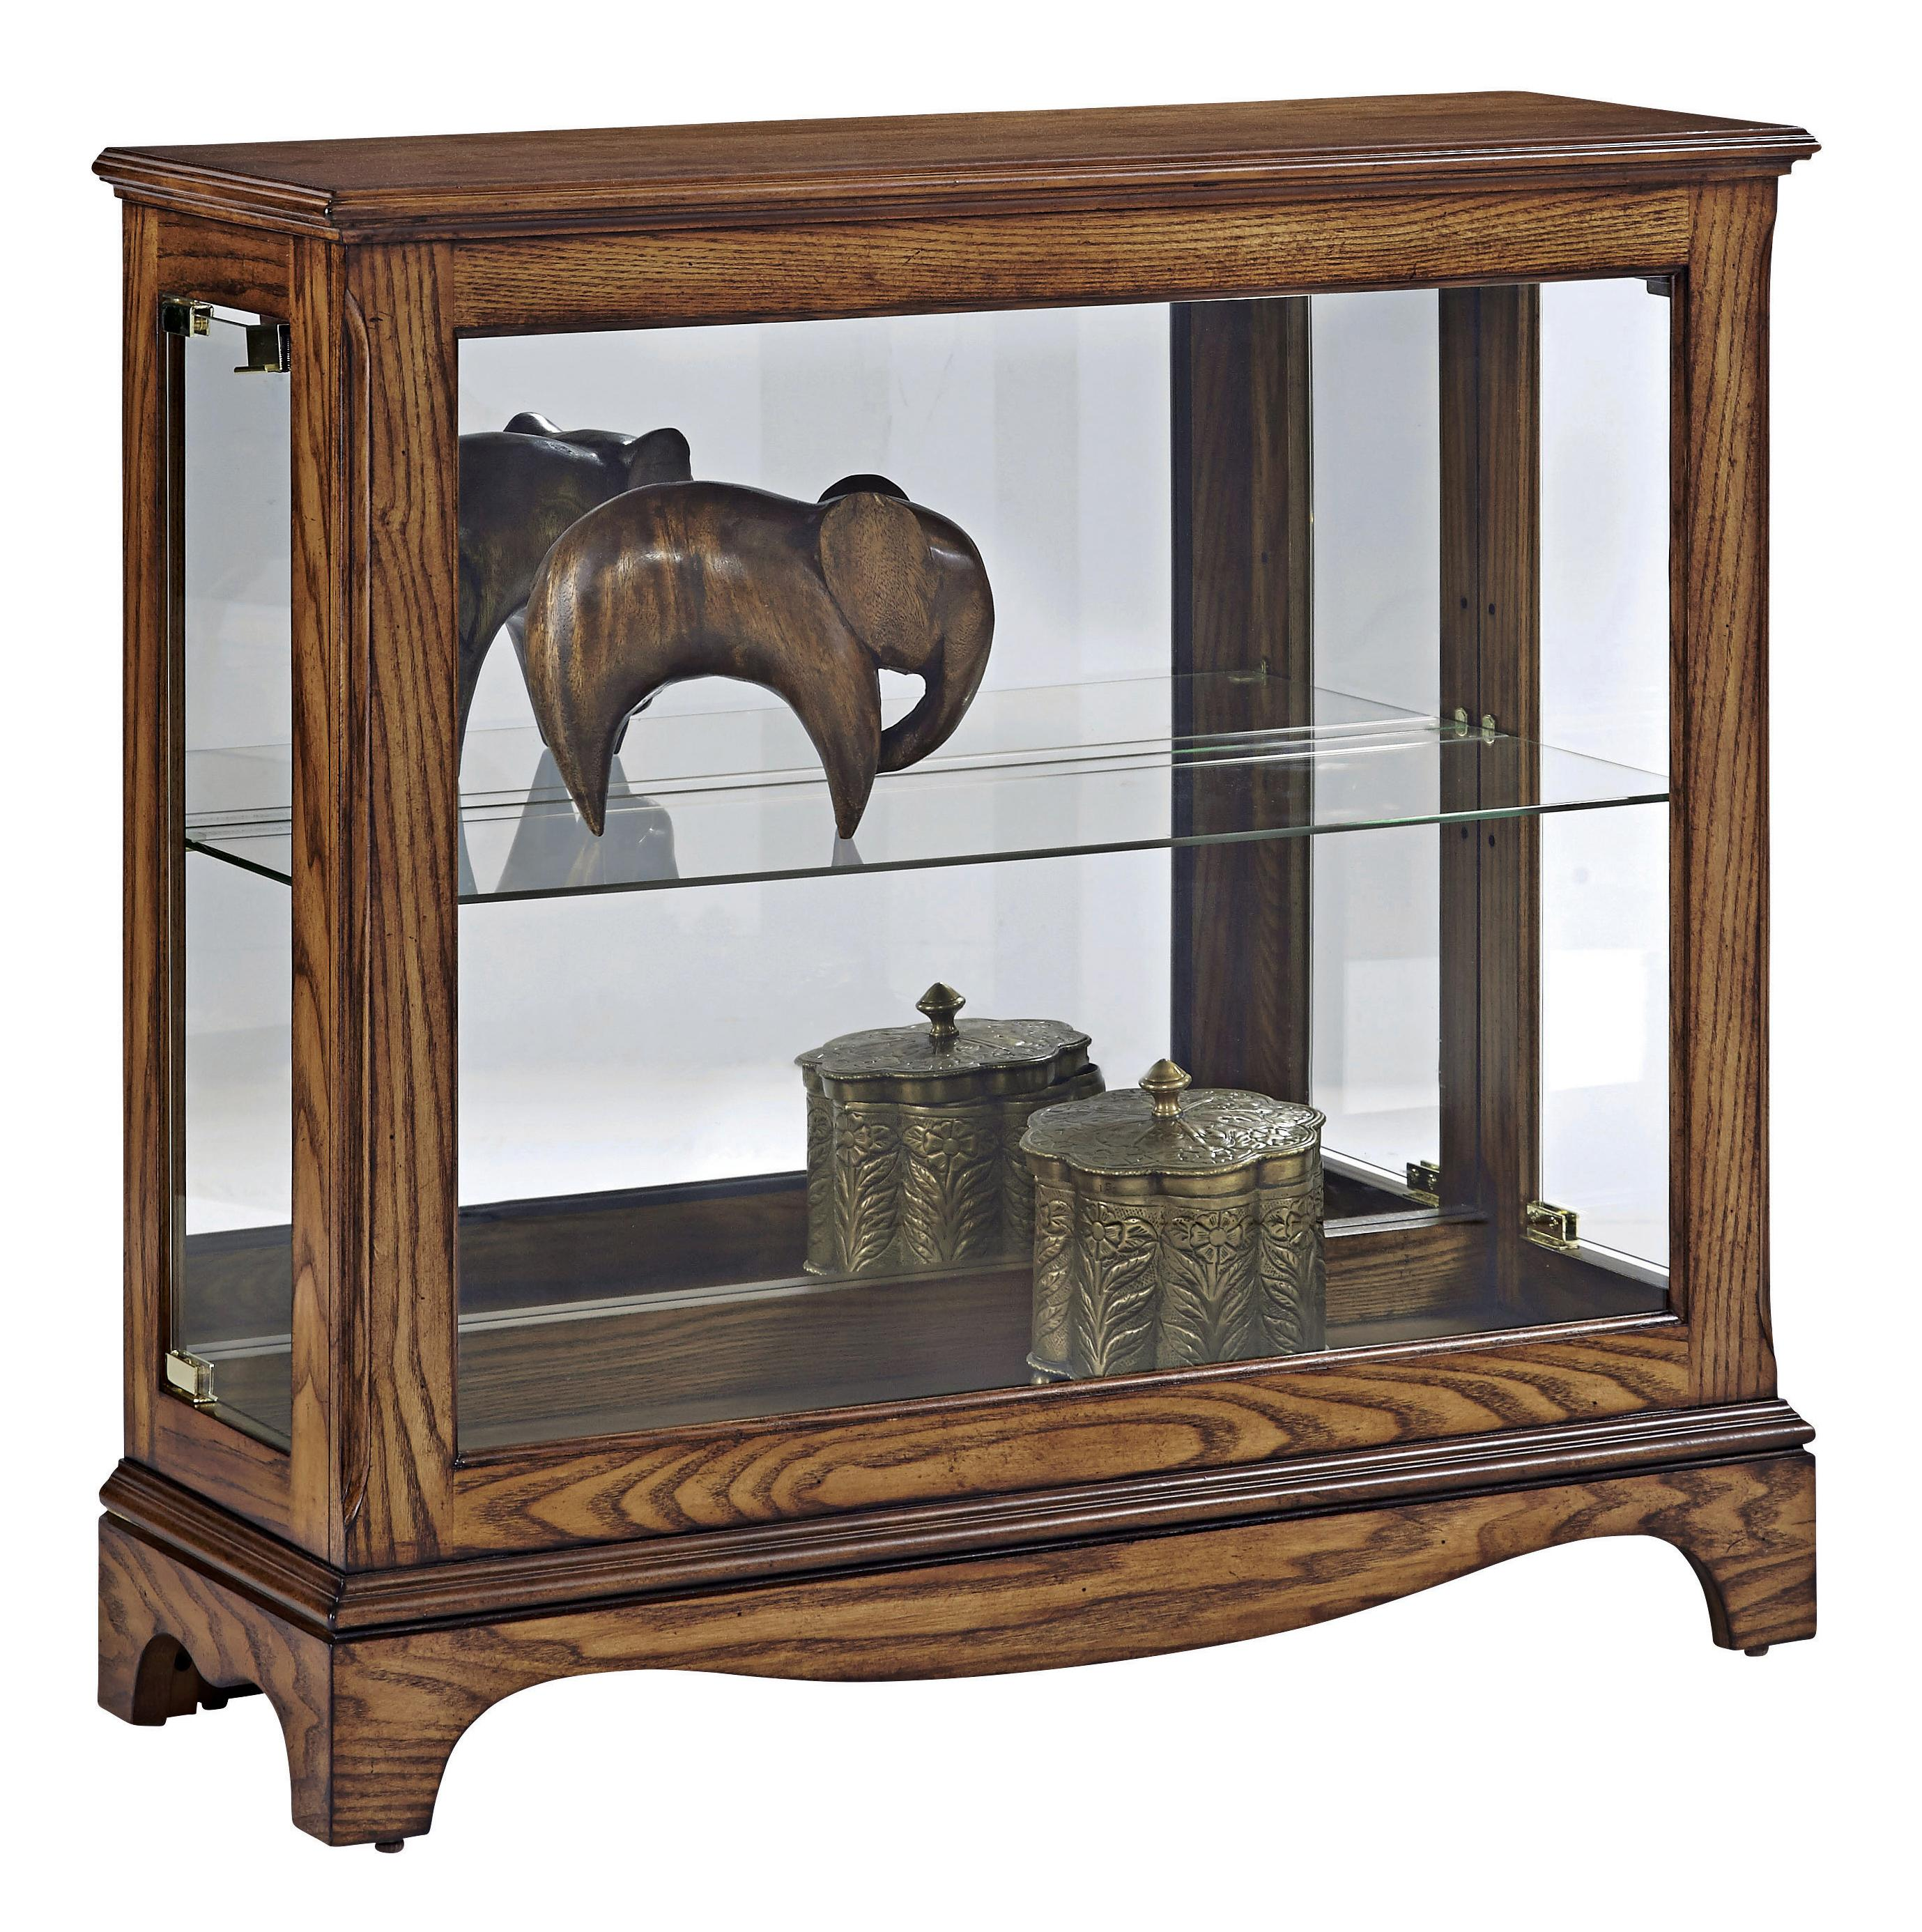 Pulaski Furniture Curios Console - Item Number: 21495